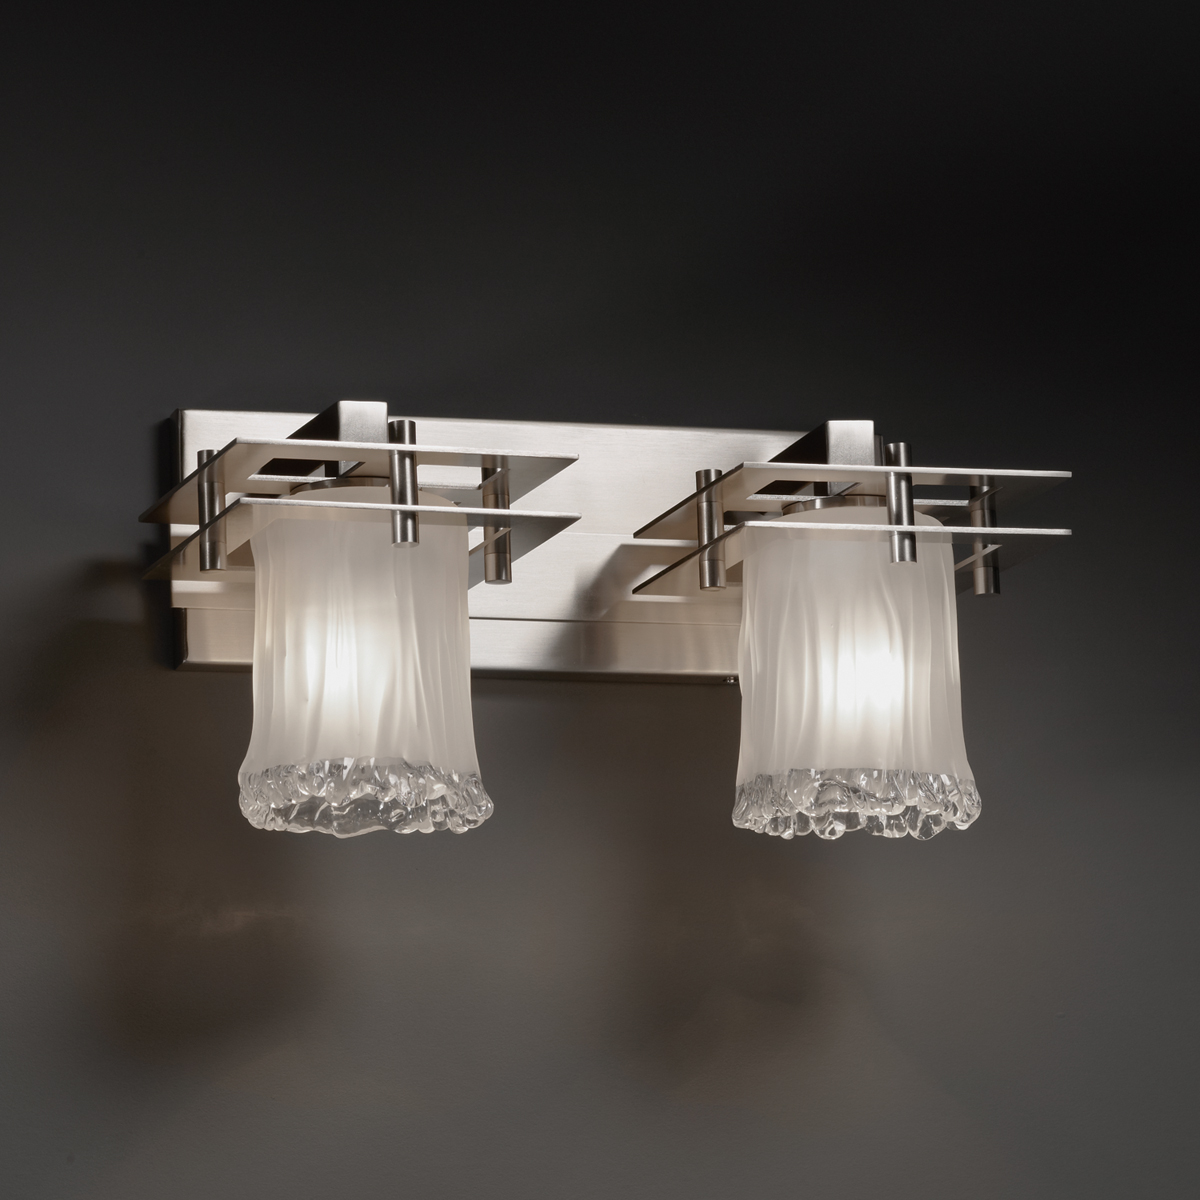 Justice Design (GLA-8172) Metropolis 2-Light Bath Bar from the Veneto Luce Collection